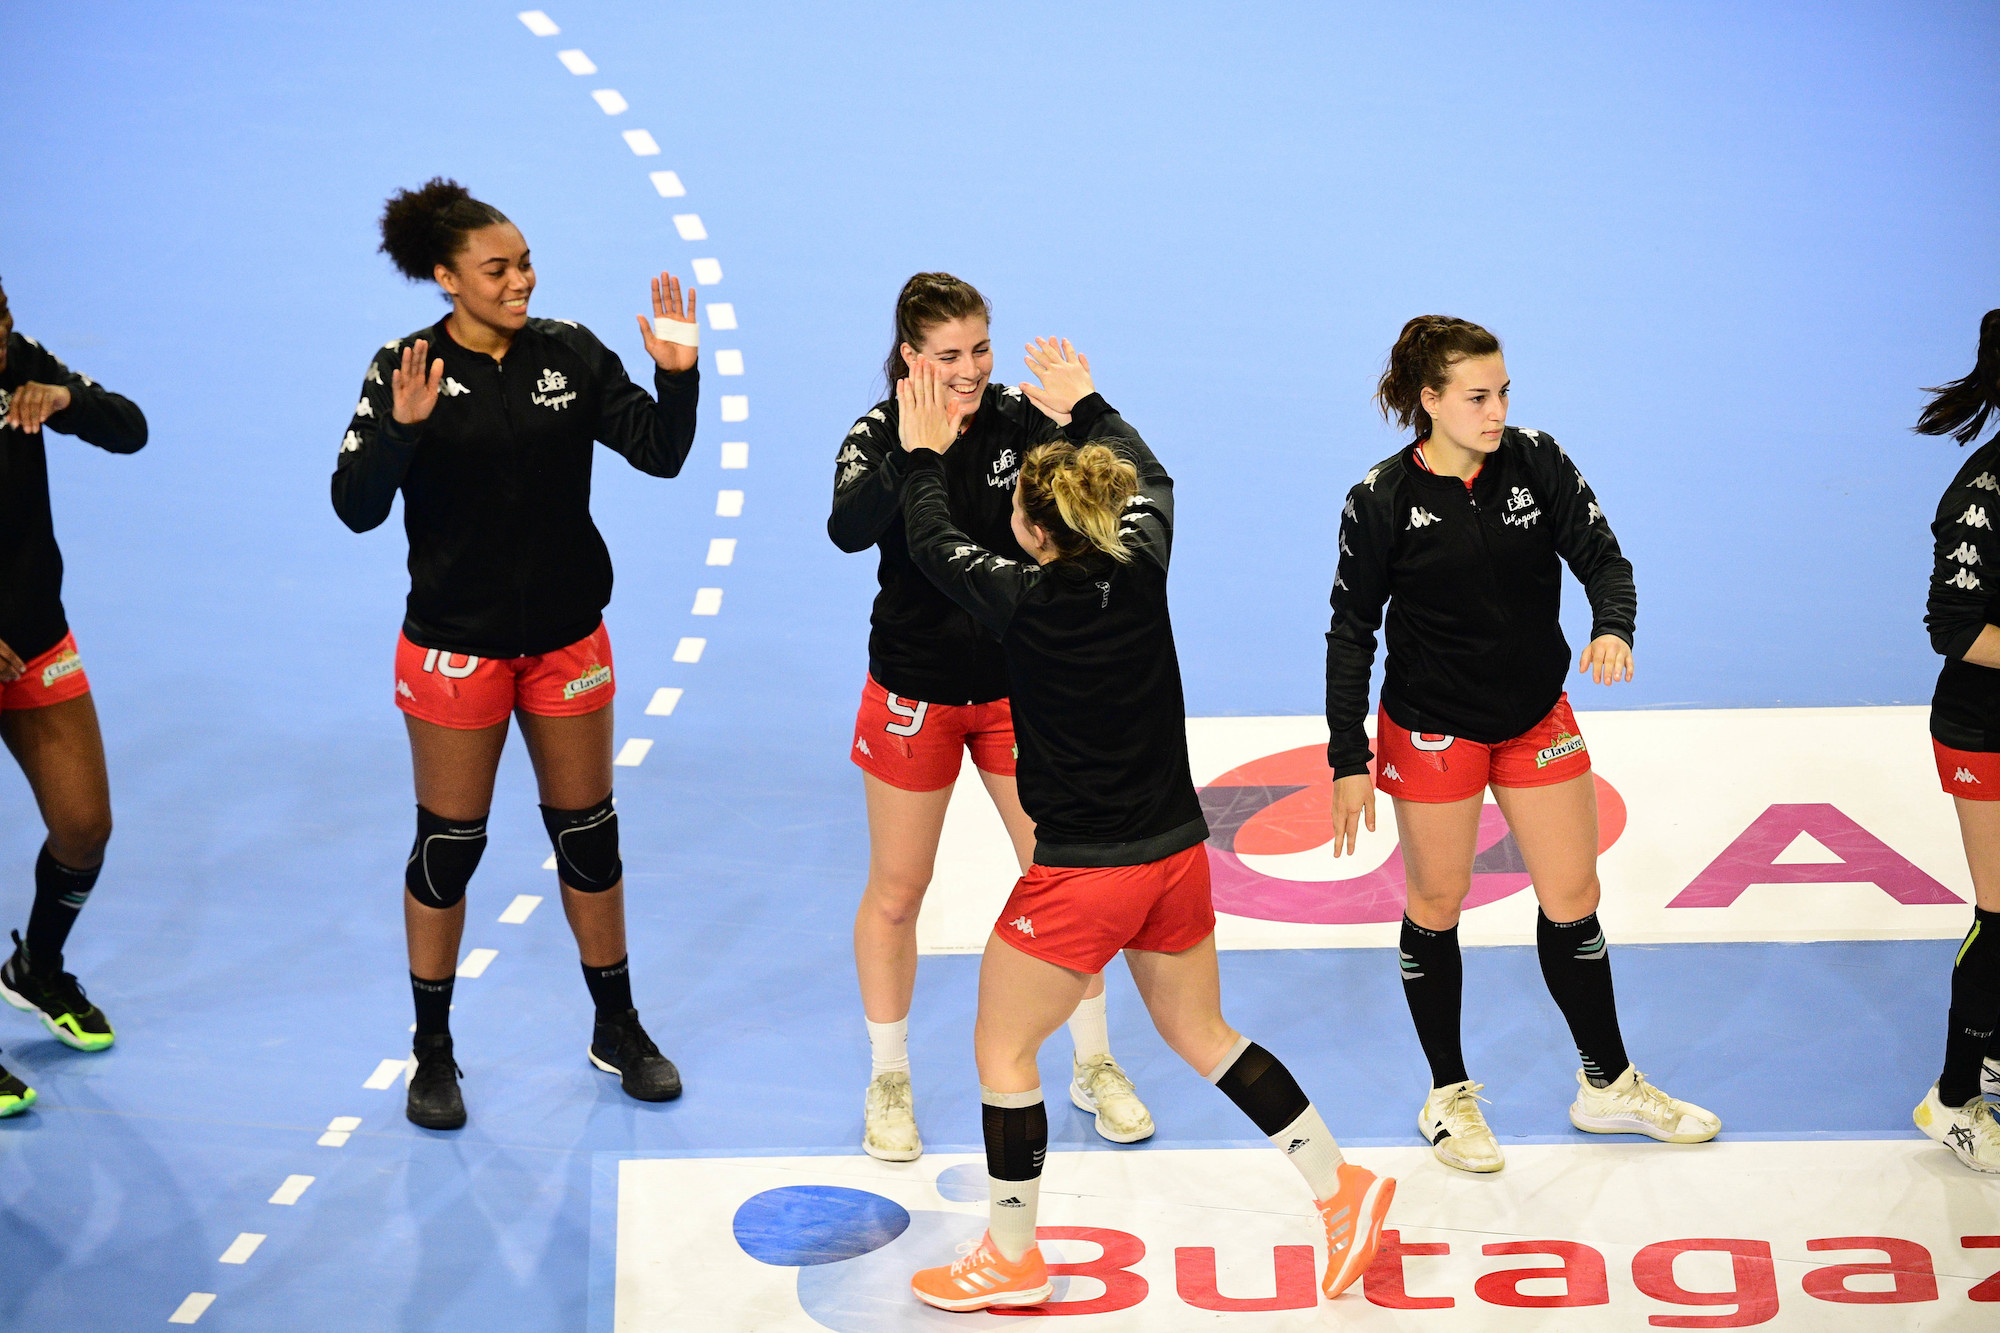 Louise CUSSET of Besancon, Lea CUENOT of Besancon and Clarisse MAIROT of Besancon during the Women's Division 1 match between Besancon and Nantes on 27January, 2021 in Fleury-les-Aubrais, France. (Photo by Sebastien Bozon/Icon Sport)